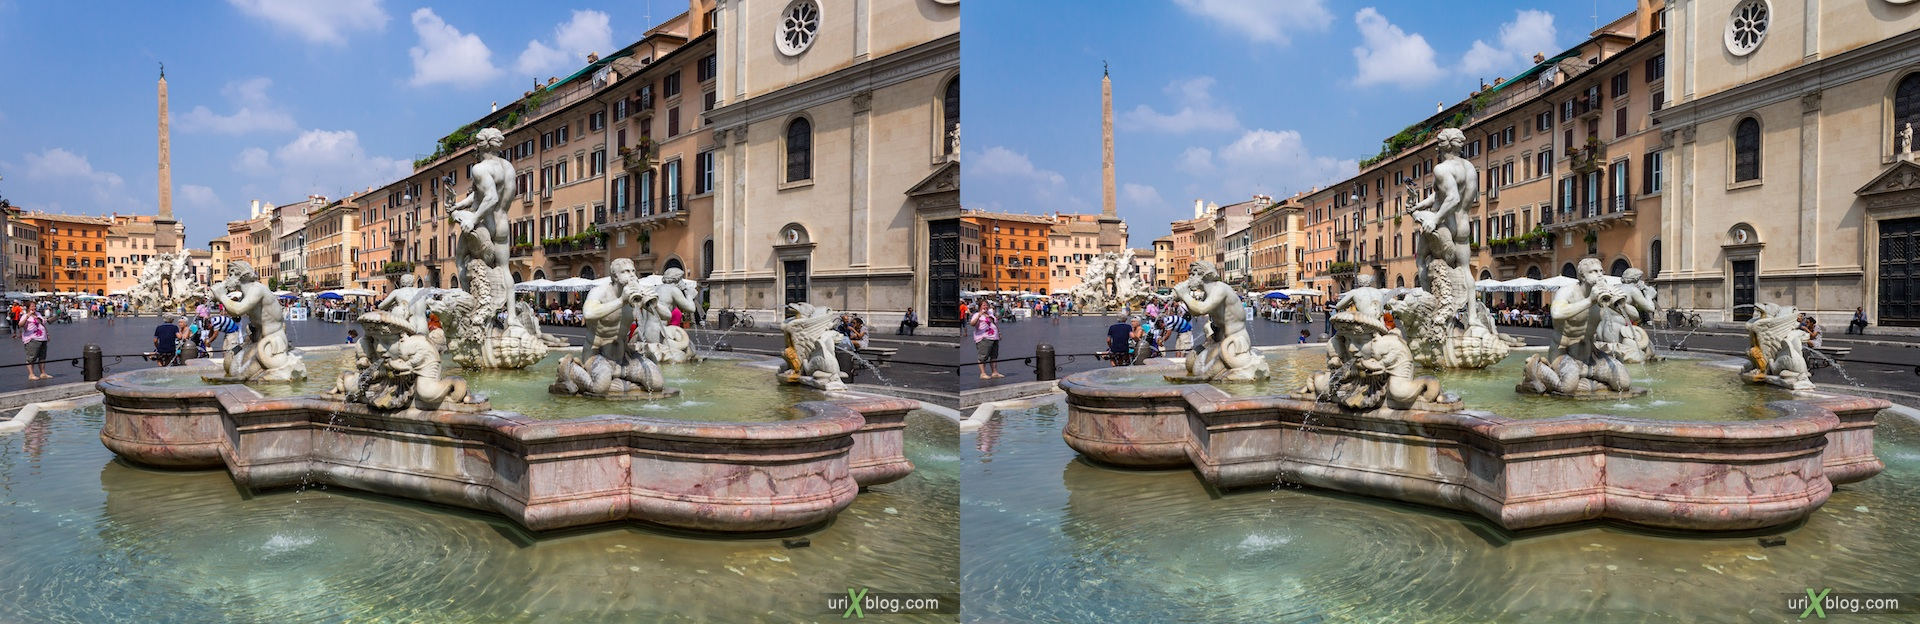 2012 Rome Fountains stereo 3d